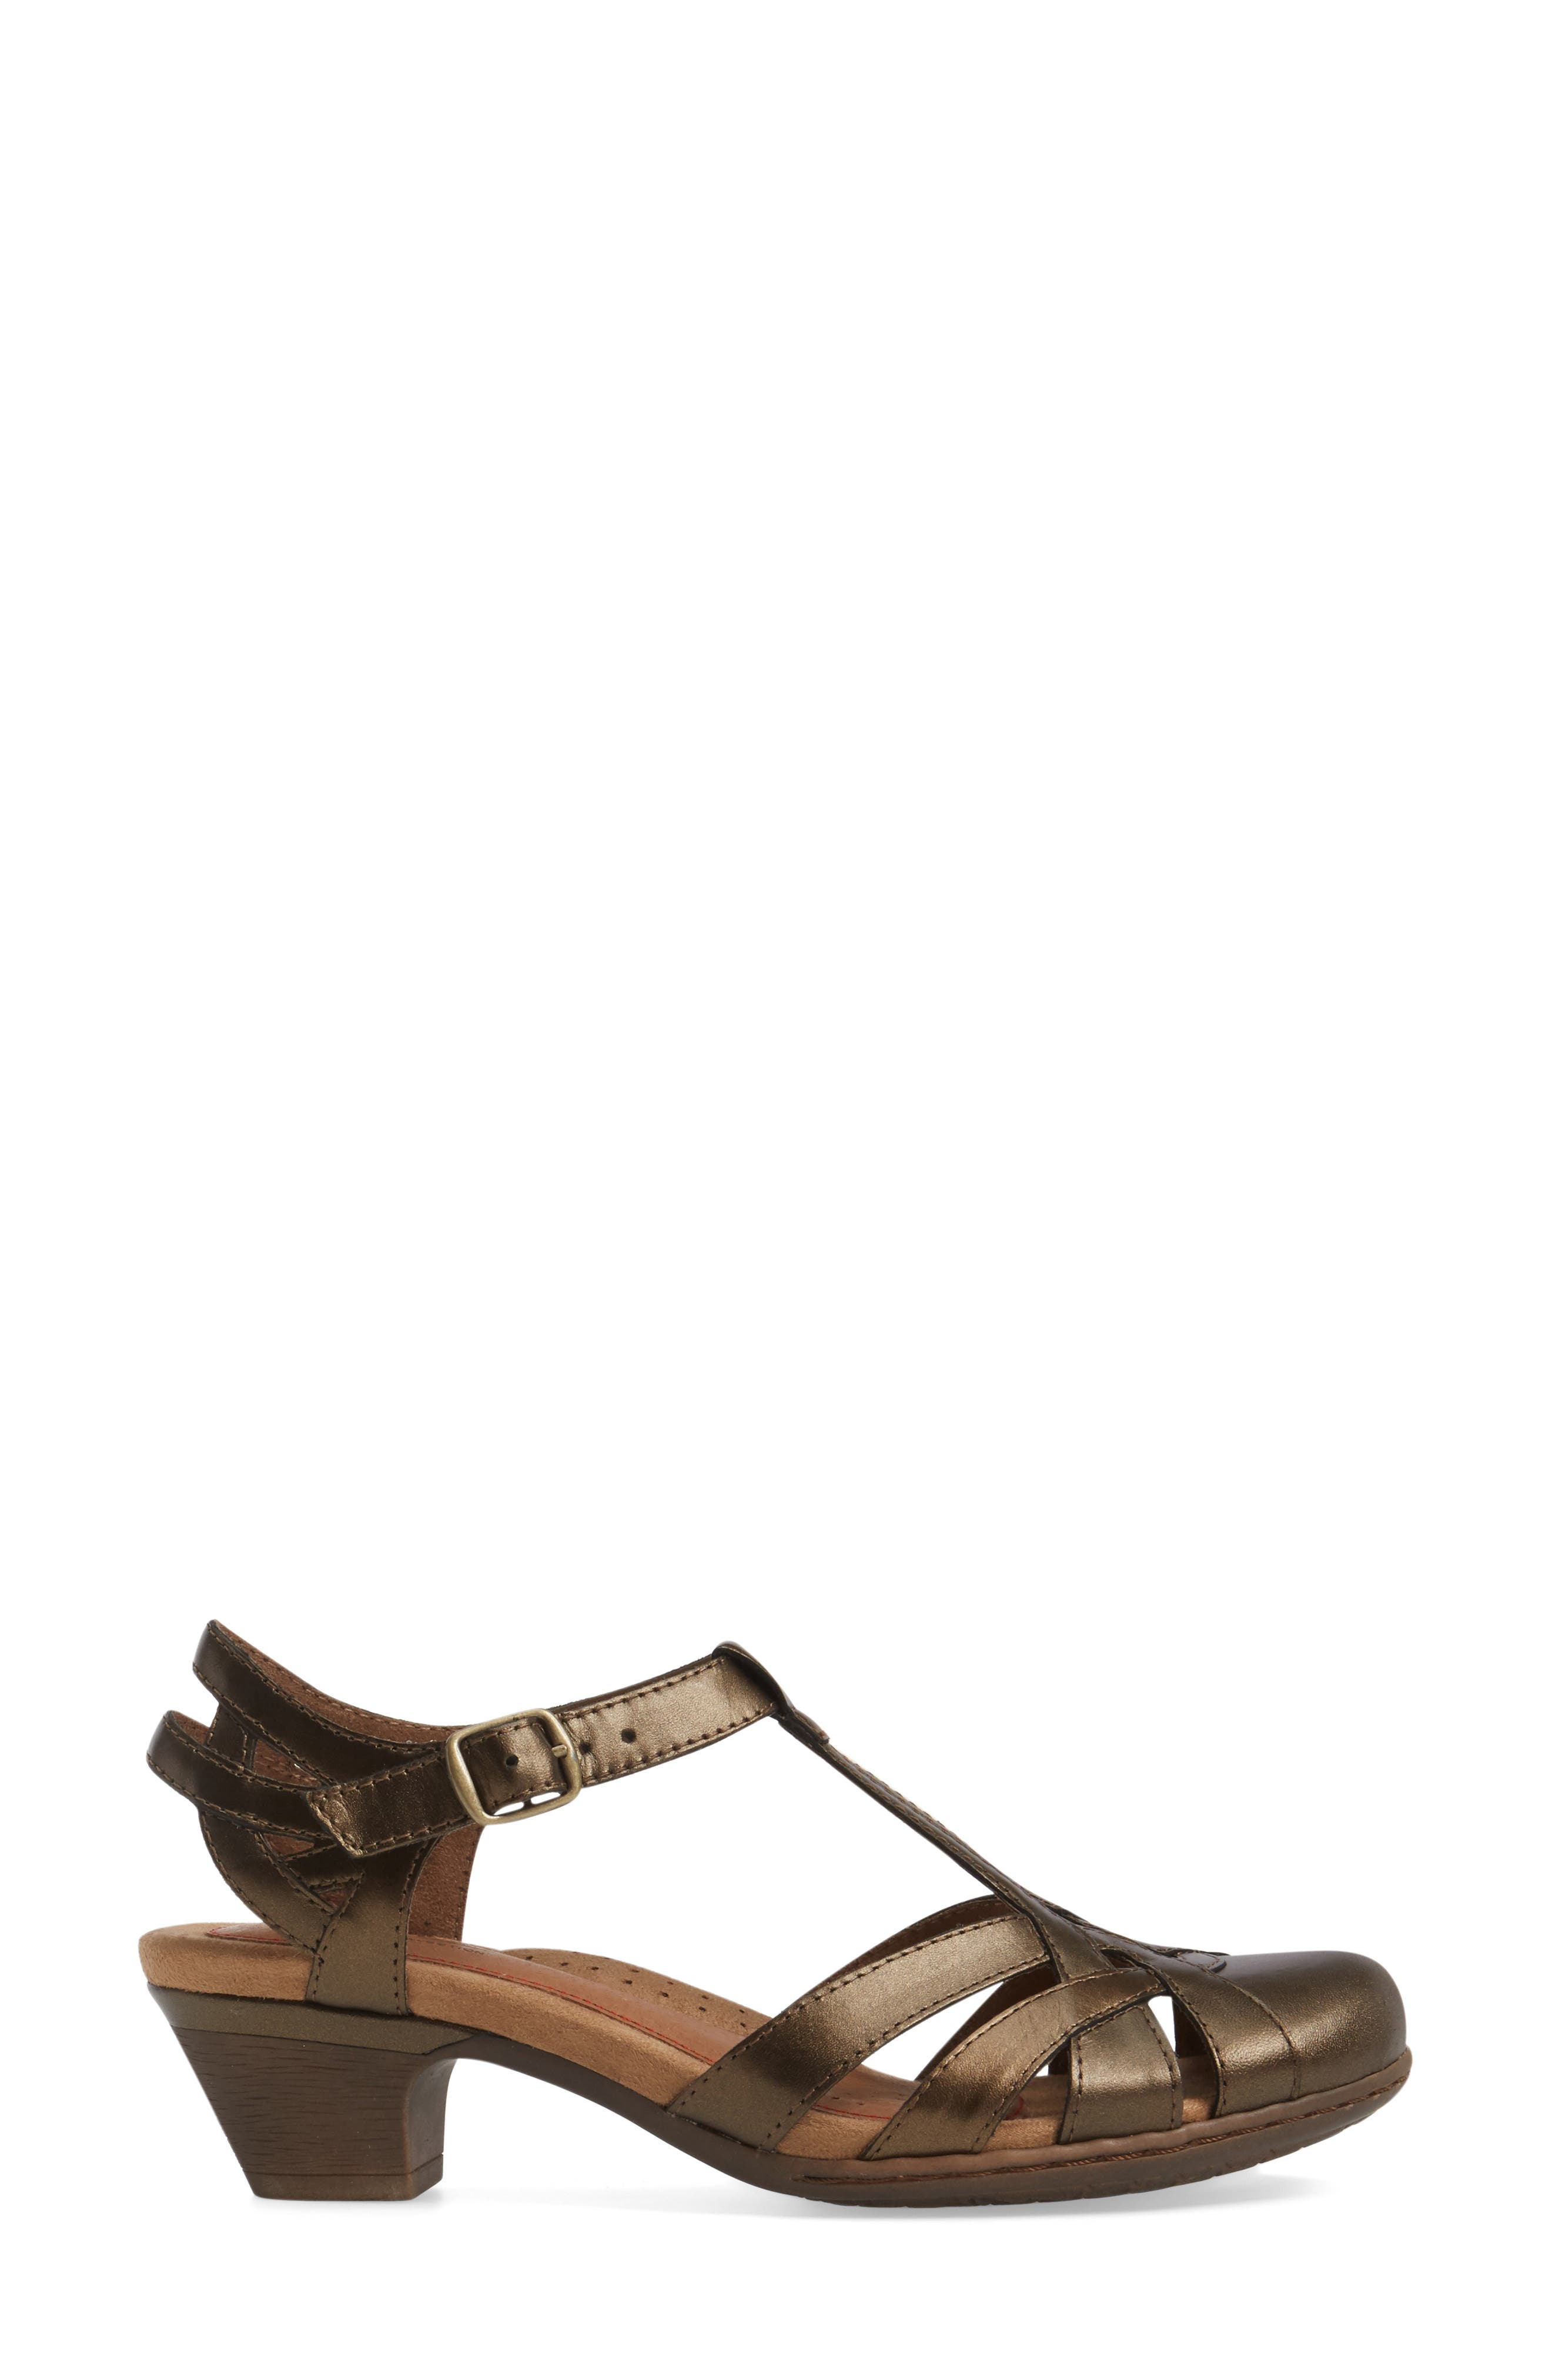 'Aubrey' Sandal,                             Alternate thumbnail 39, color,